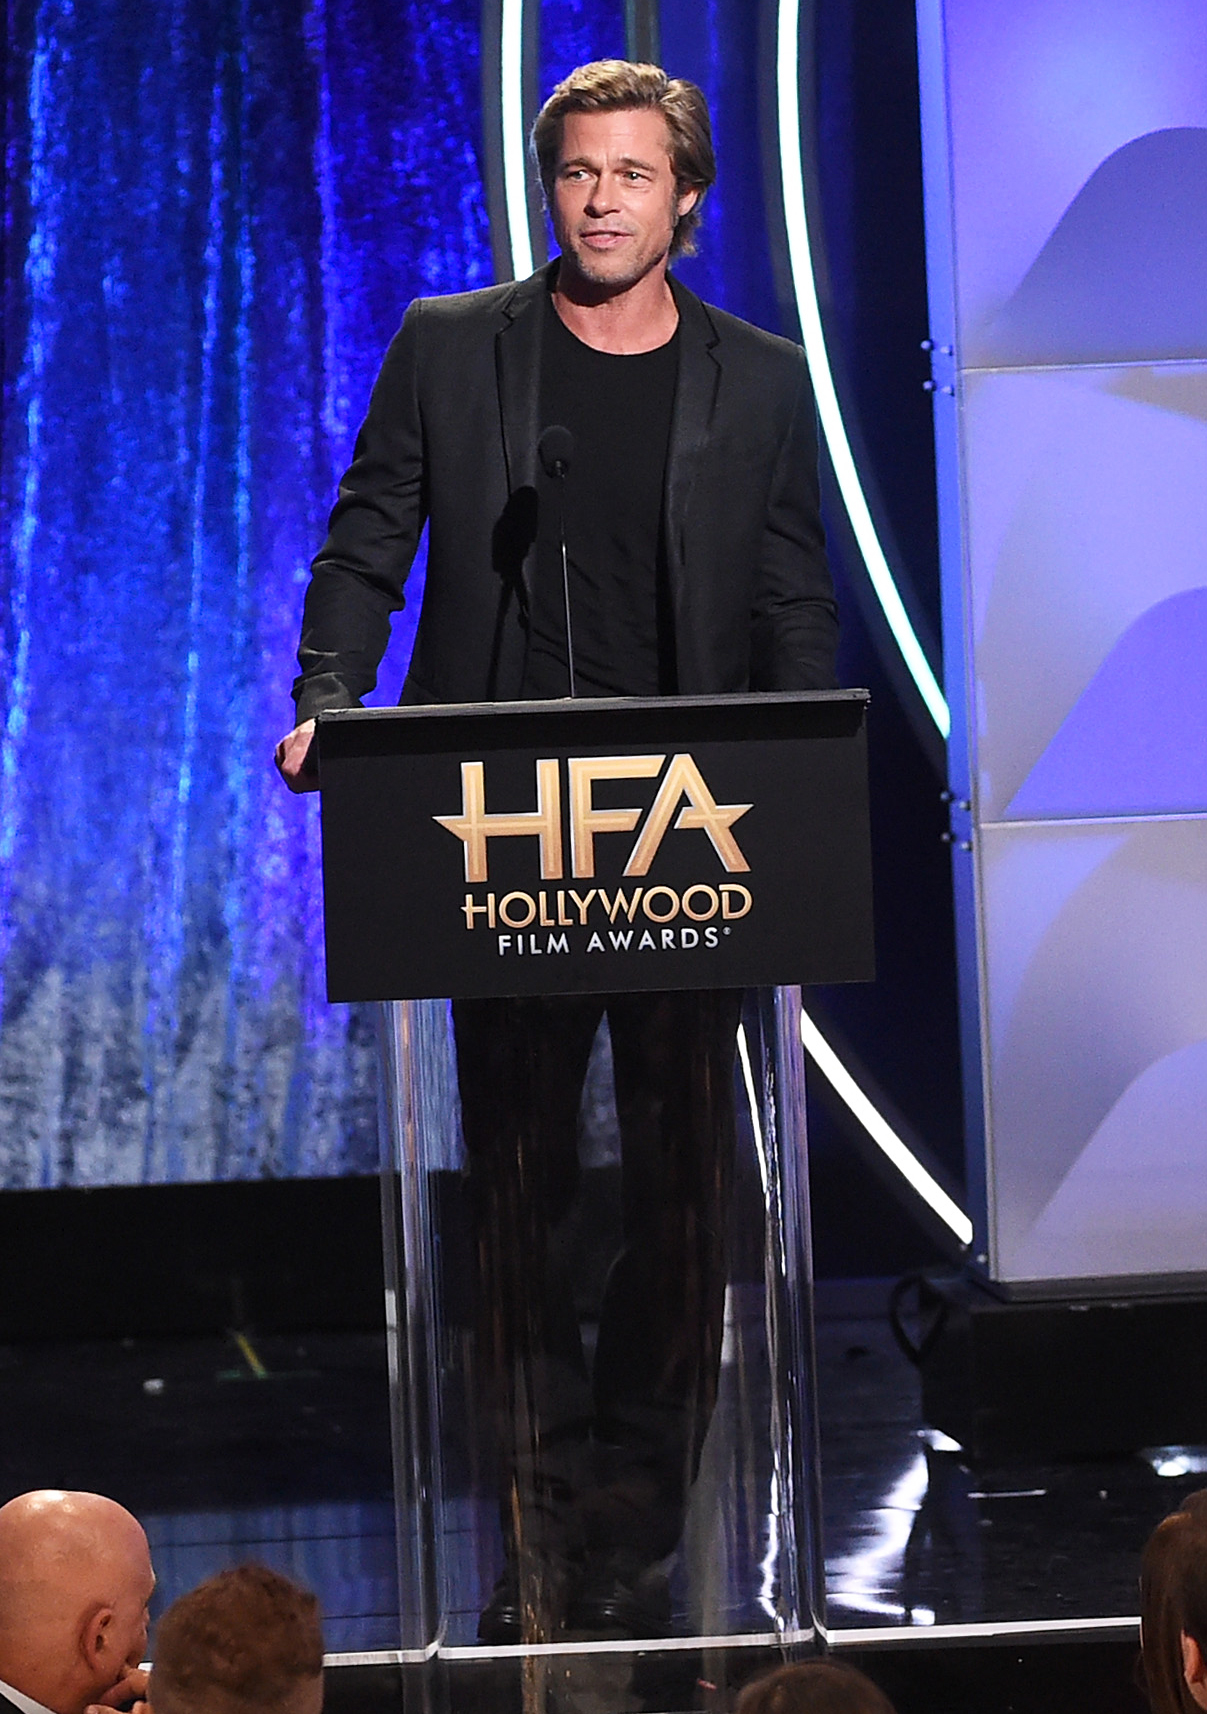 Brad Pitt - A simple crewneck tee dressed down Pitt's black suit at the 22nd Annual Hollywood Film Awards in Beverly Hills on November 4, 2018.